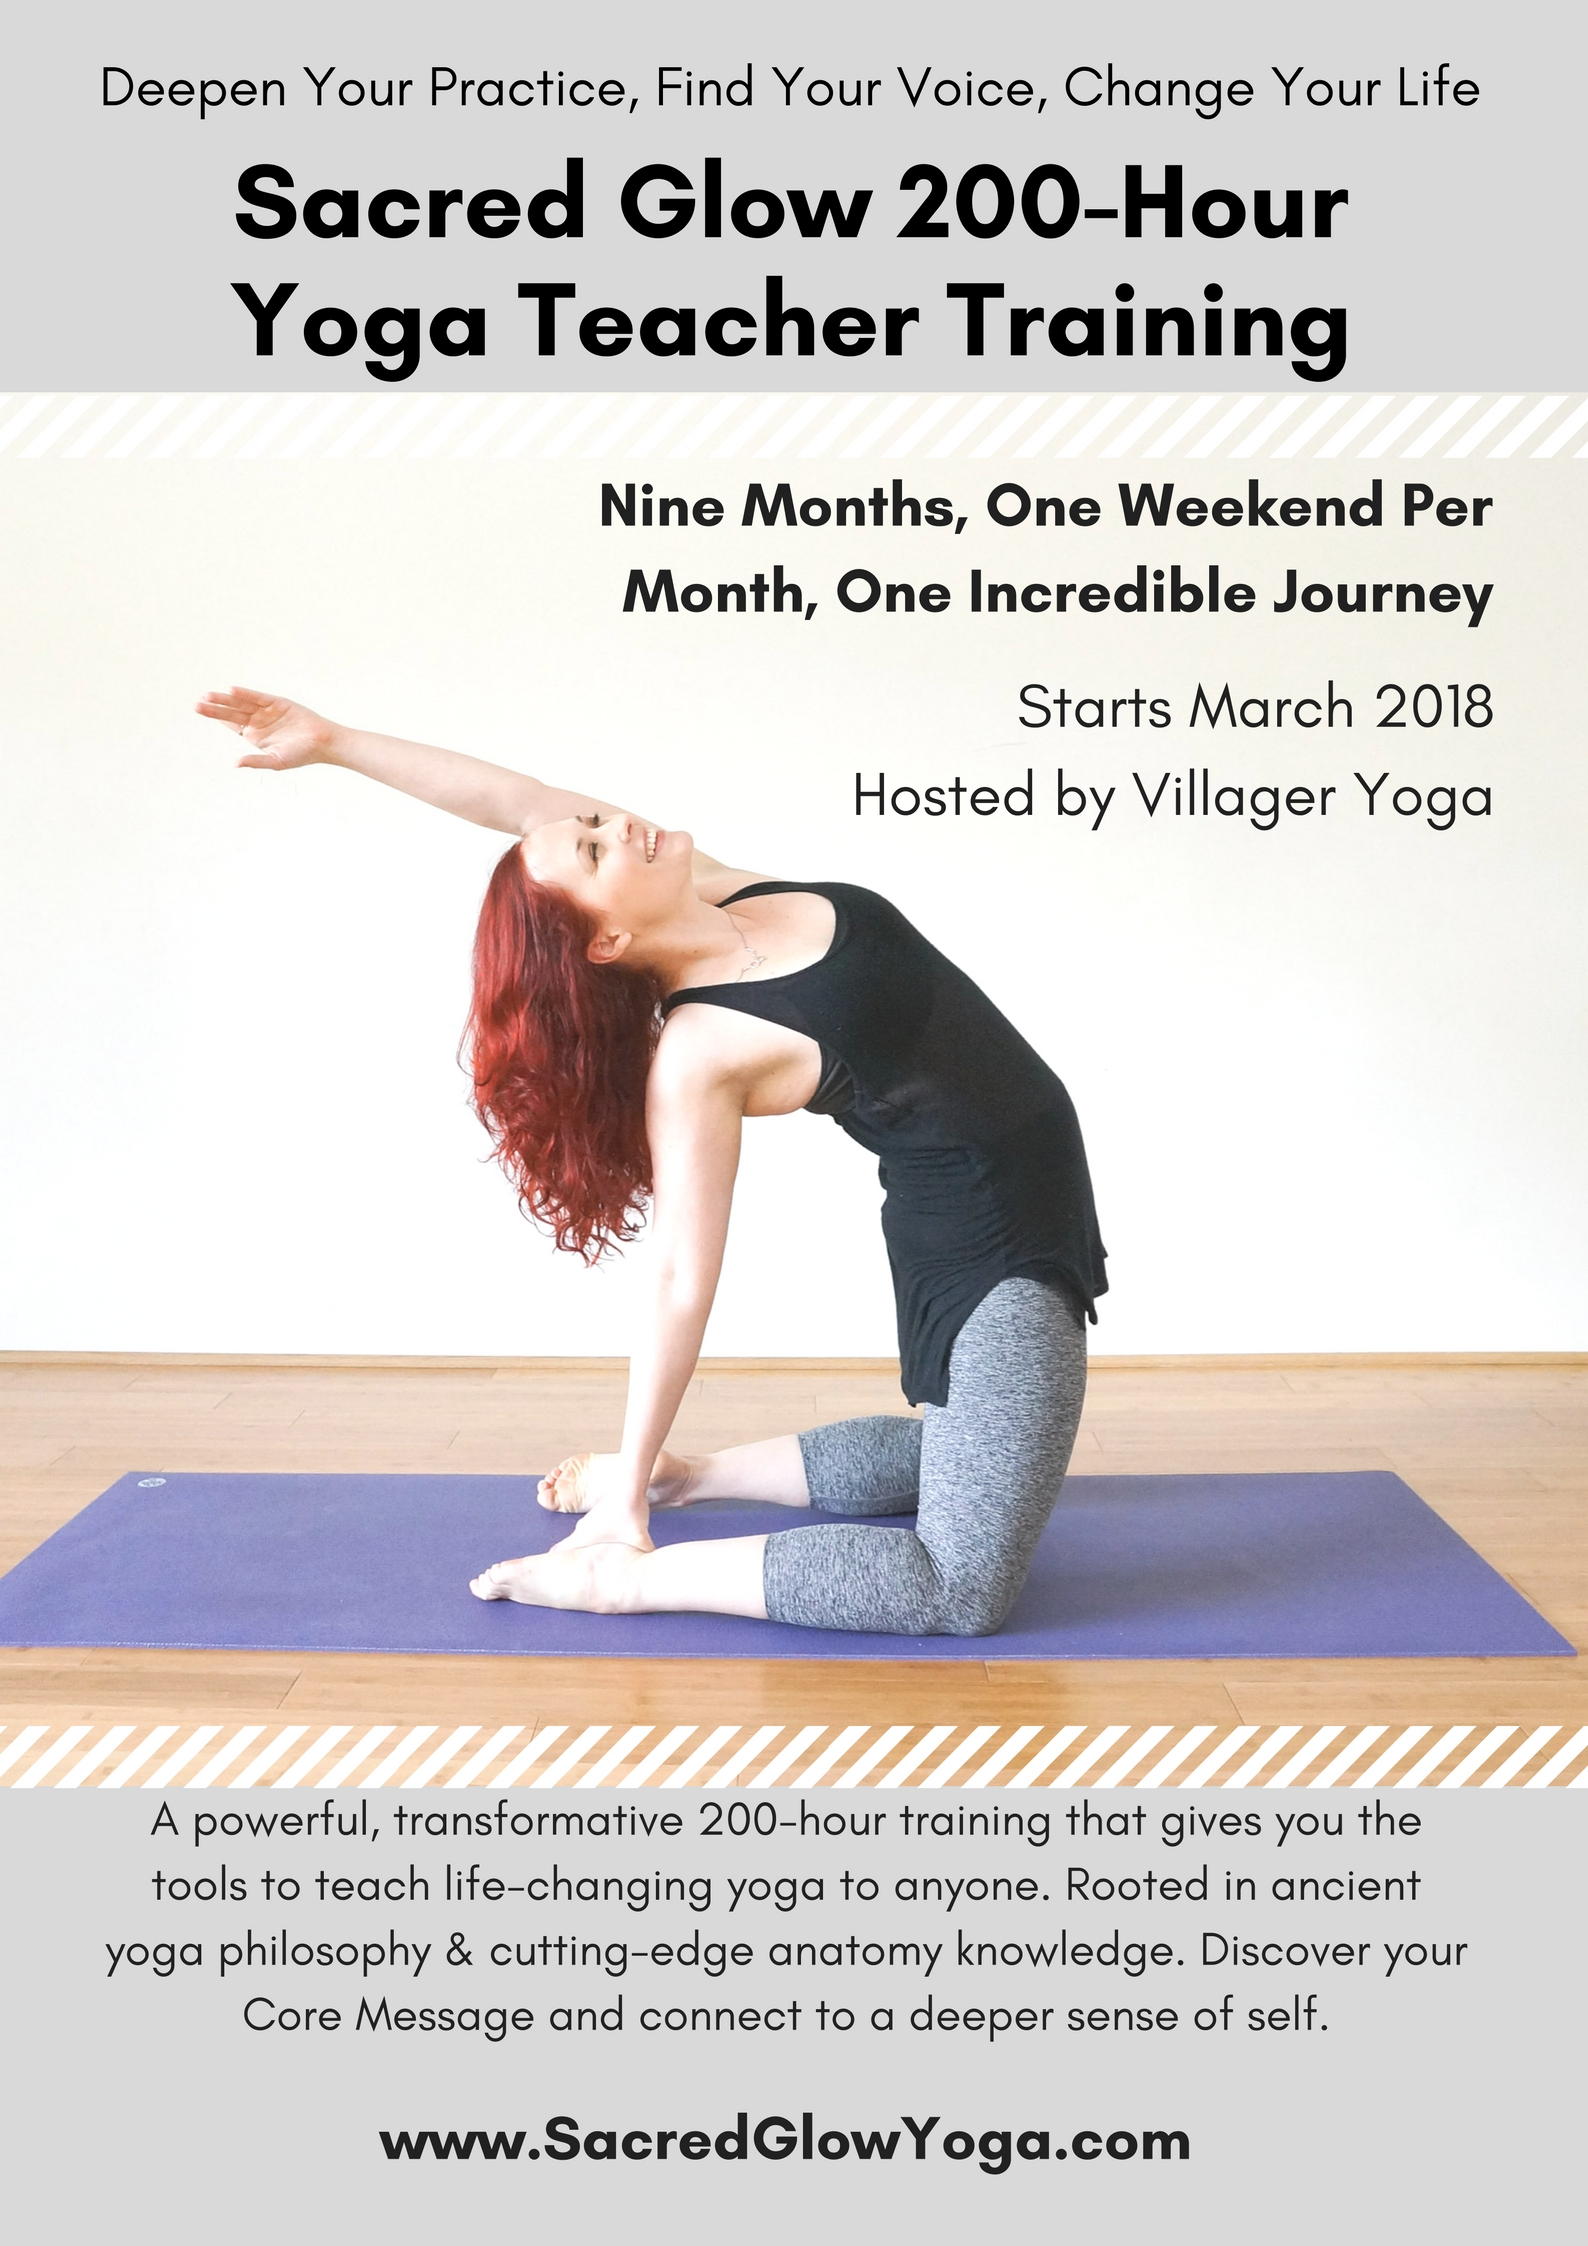 2018 Sacred Glow 200-Hour Vinyasa Yoga Teacher Training